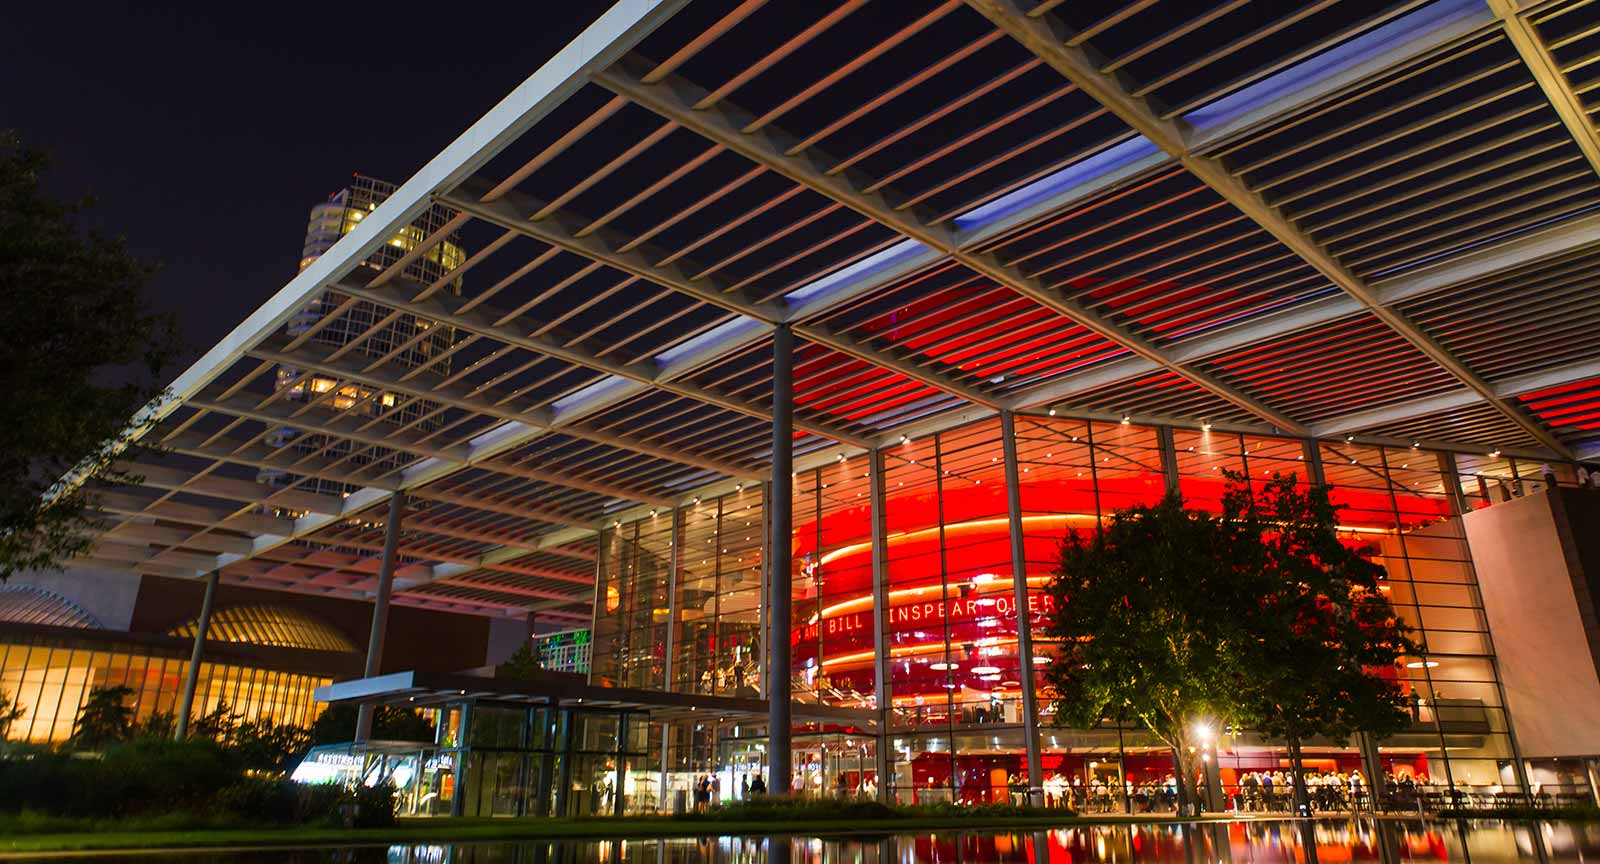 Dallas Arts District Winspear Opera House Carter Rose